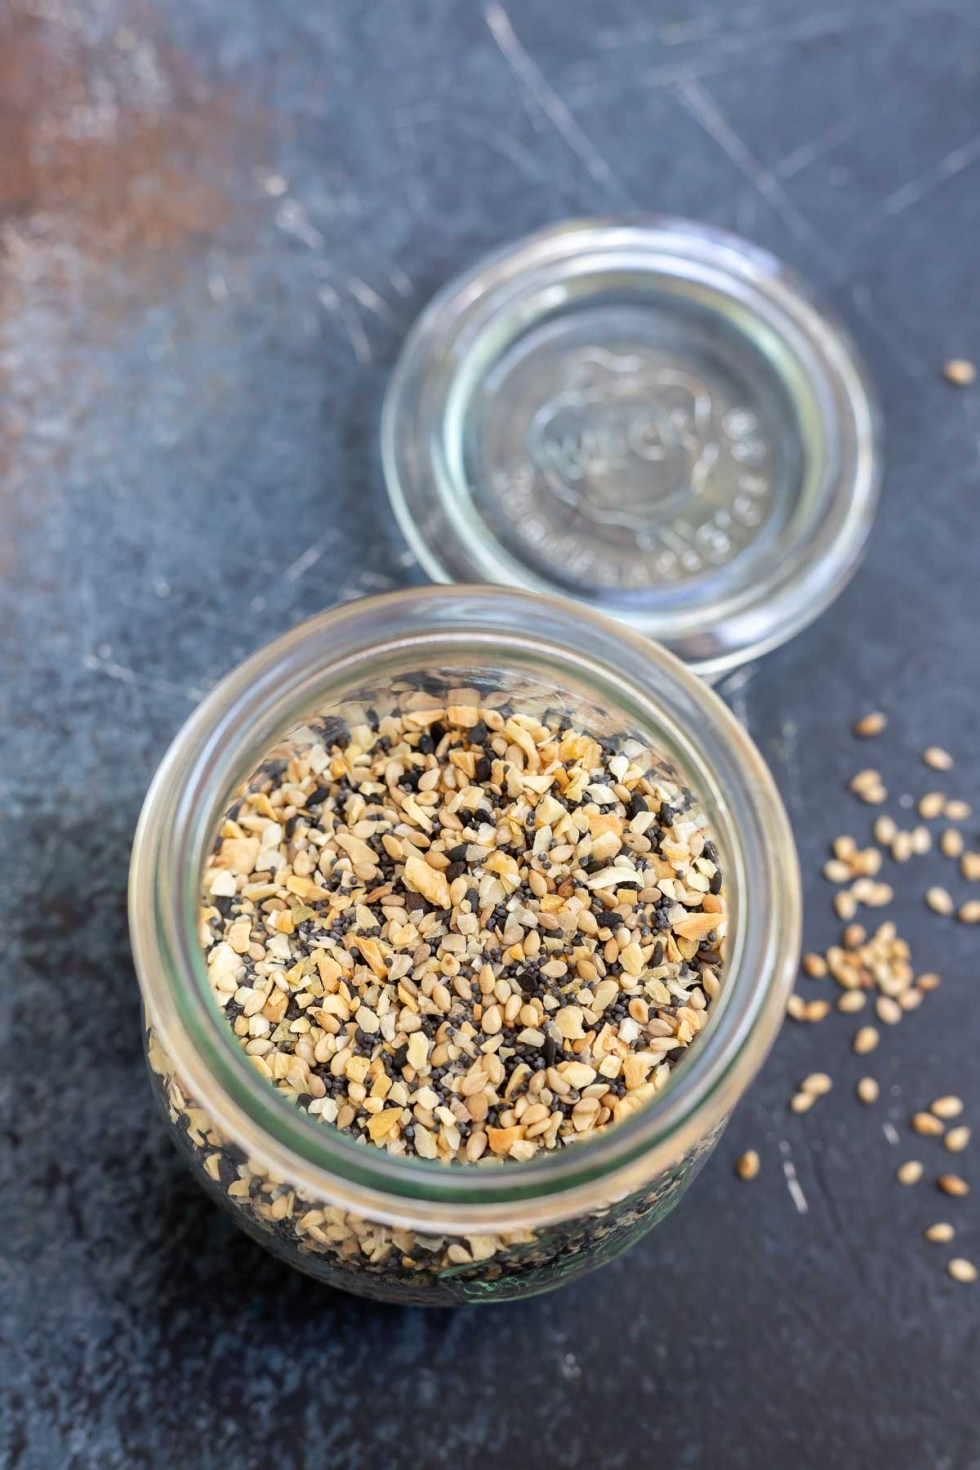 spice blend in clear glass jar with glass lid next to it